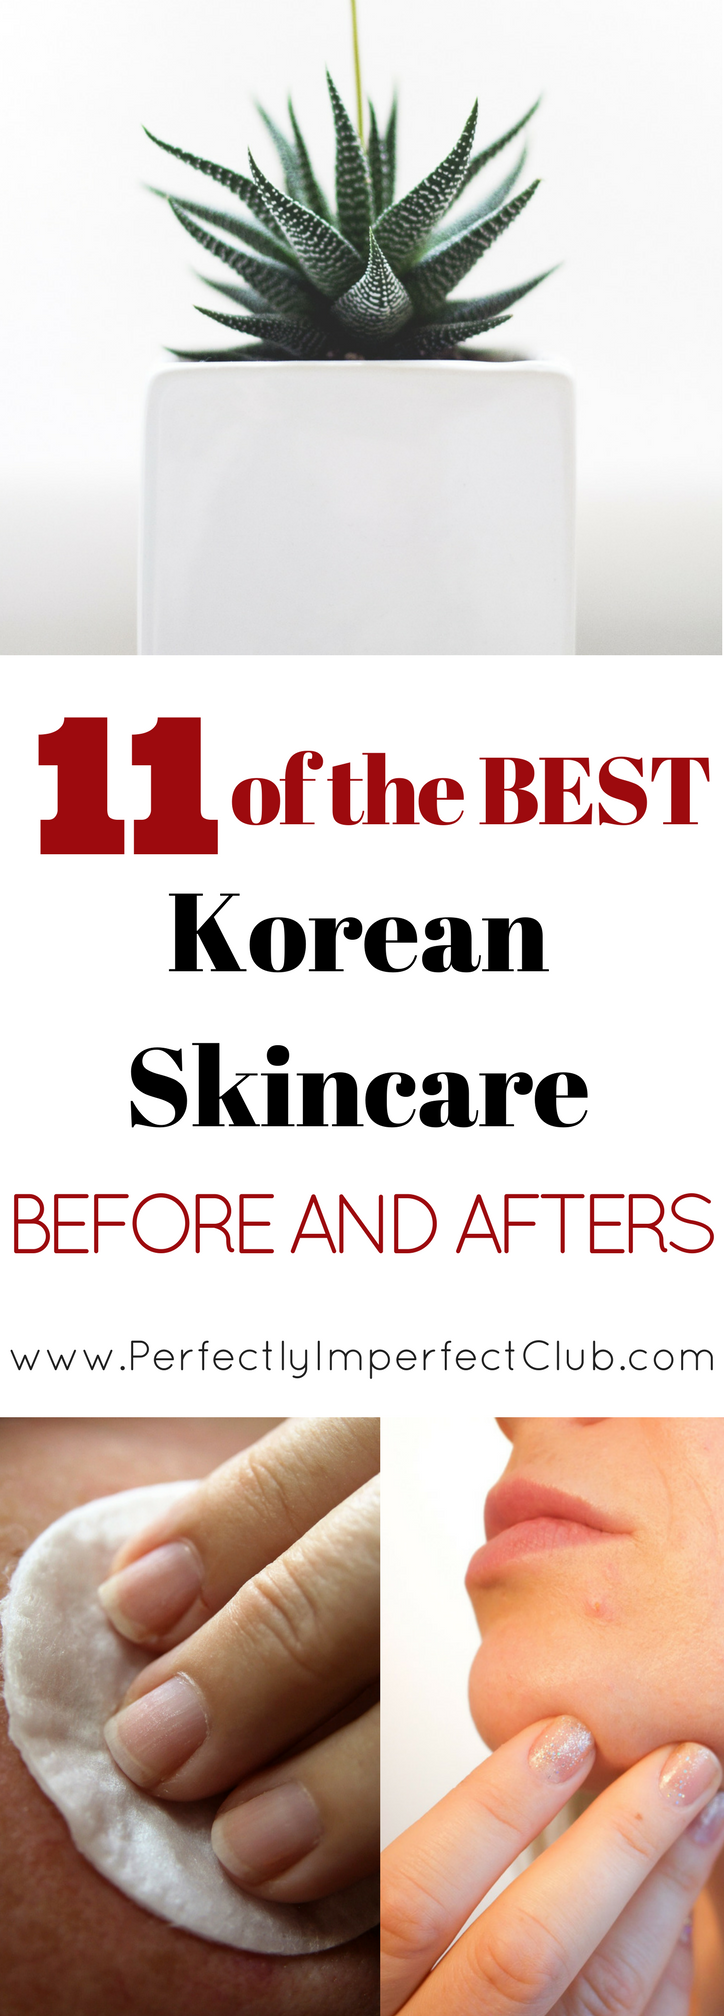 Ever wondered exactly what a Korean skincare routine can do for your skin? Here's 11 of the best Korean skincare before and afters.